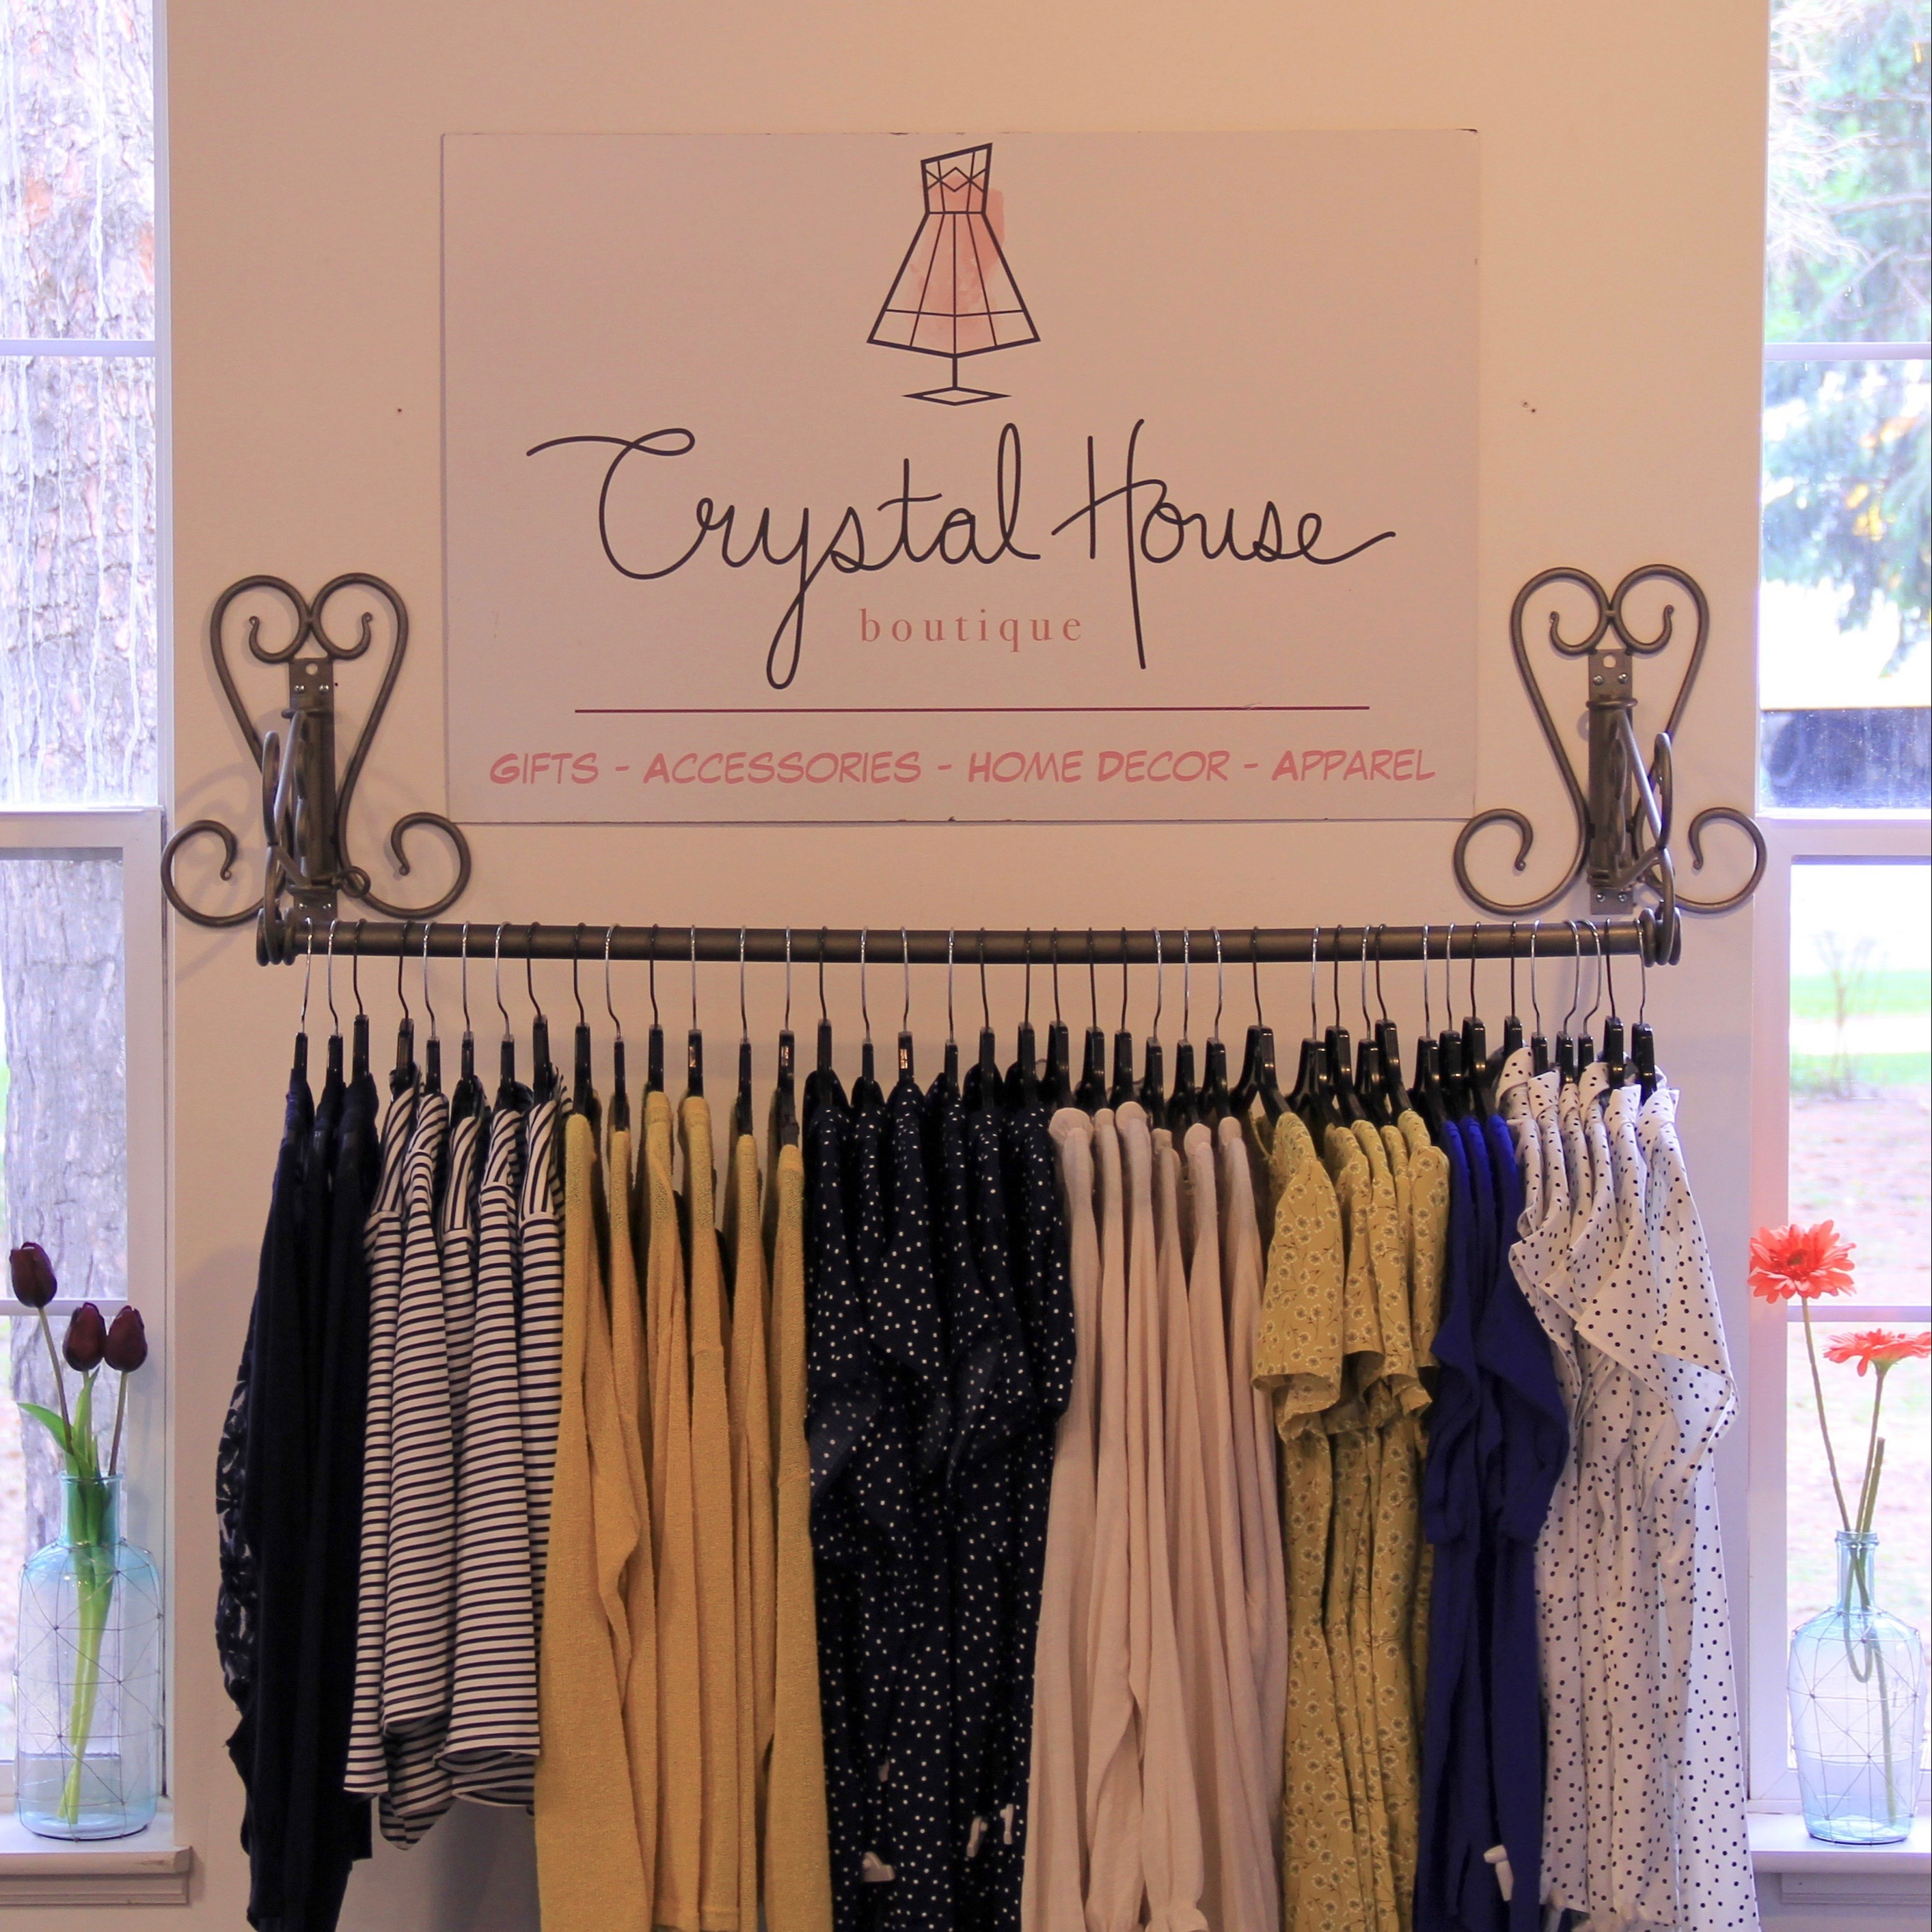 crystal house boutique in Minnesota